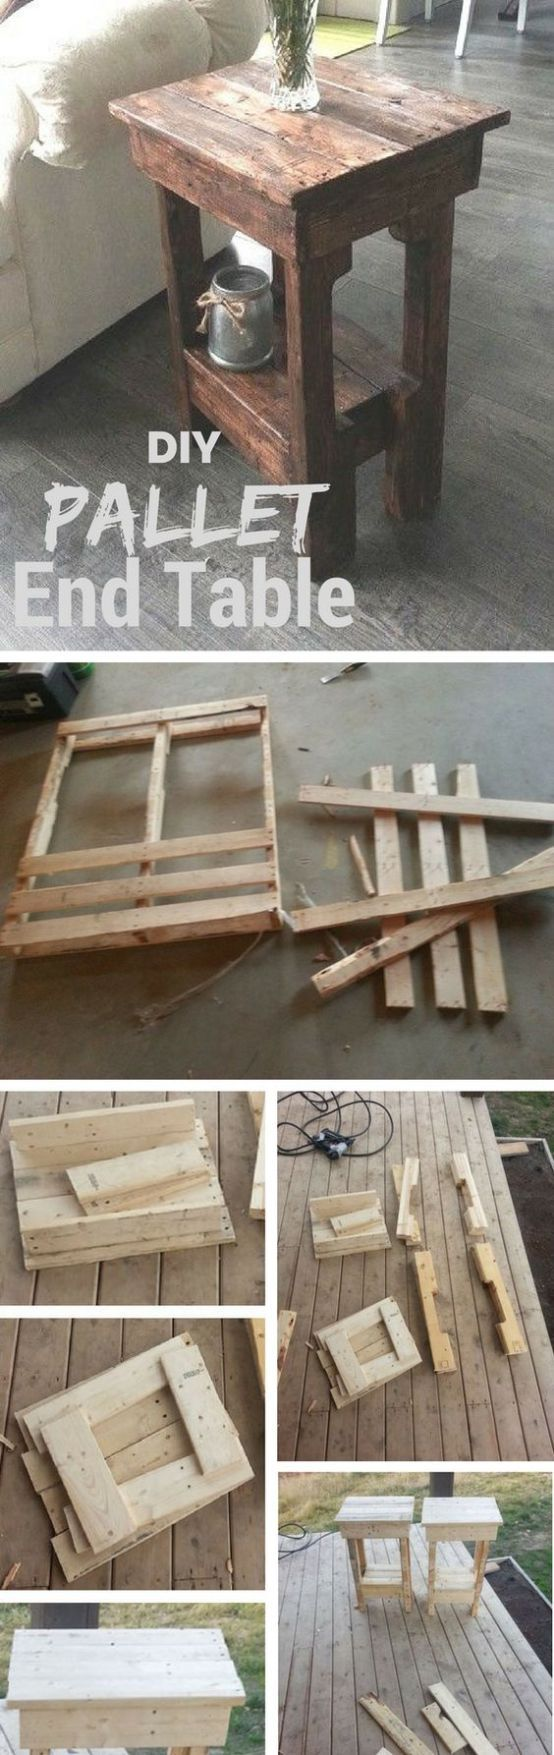 Diy pallet projects the best reclaimed wood upcycle ideas diy pallet projects the best reclaimed wood upcycle ideas geotapseo Gallery